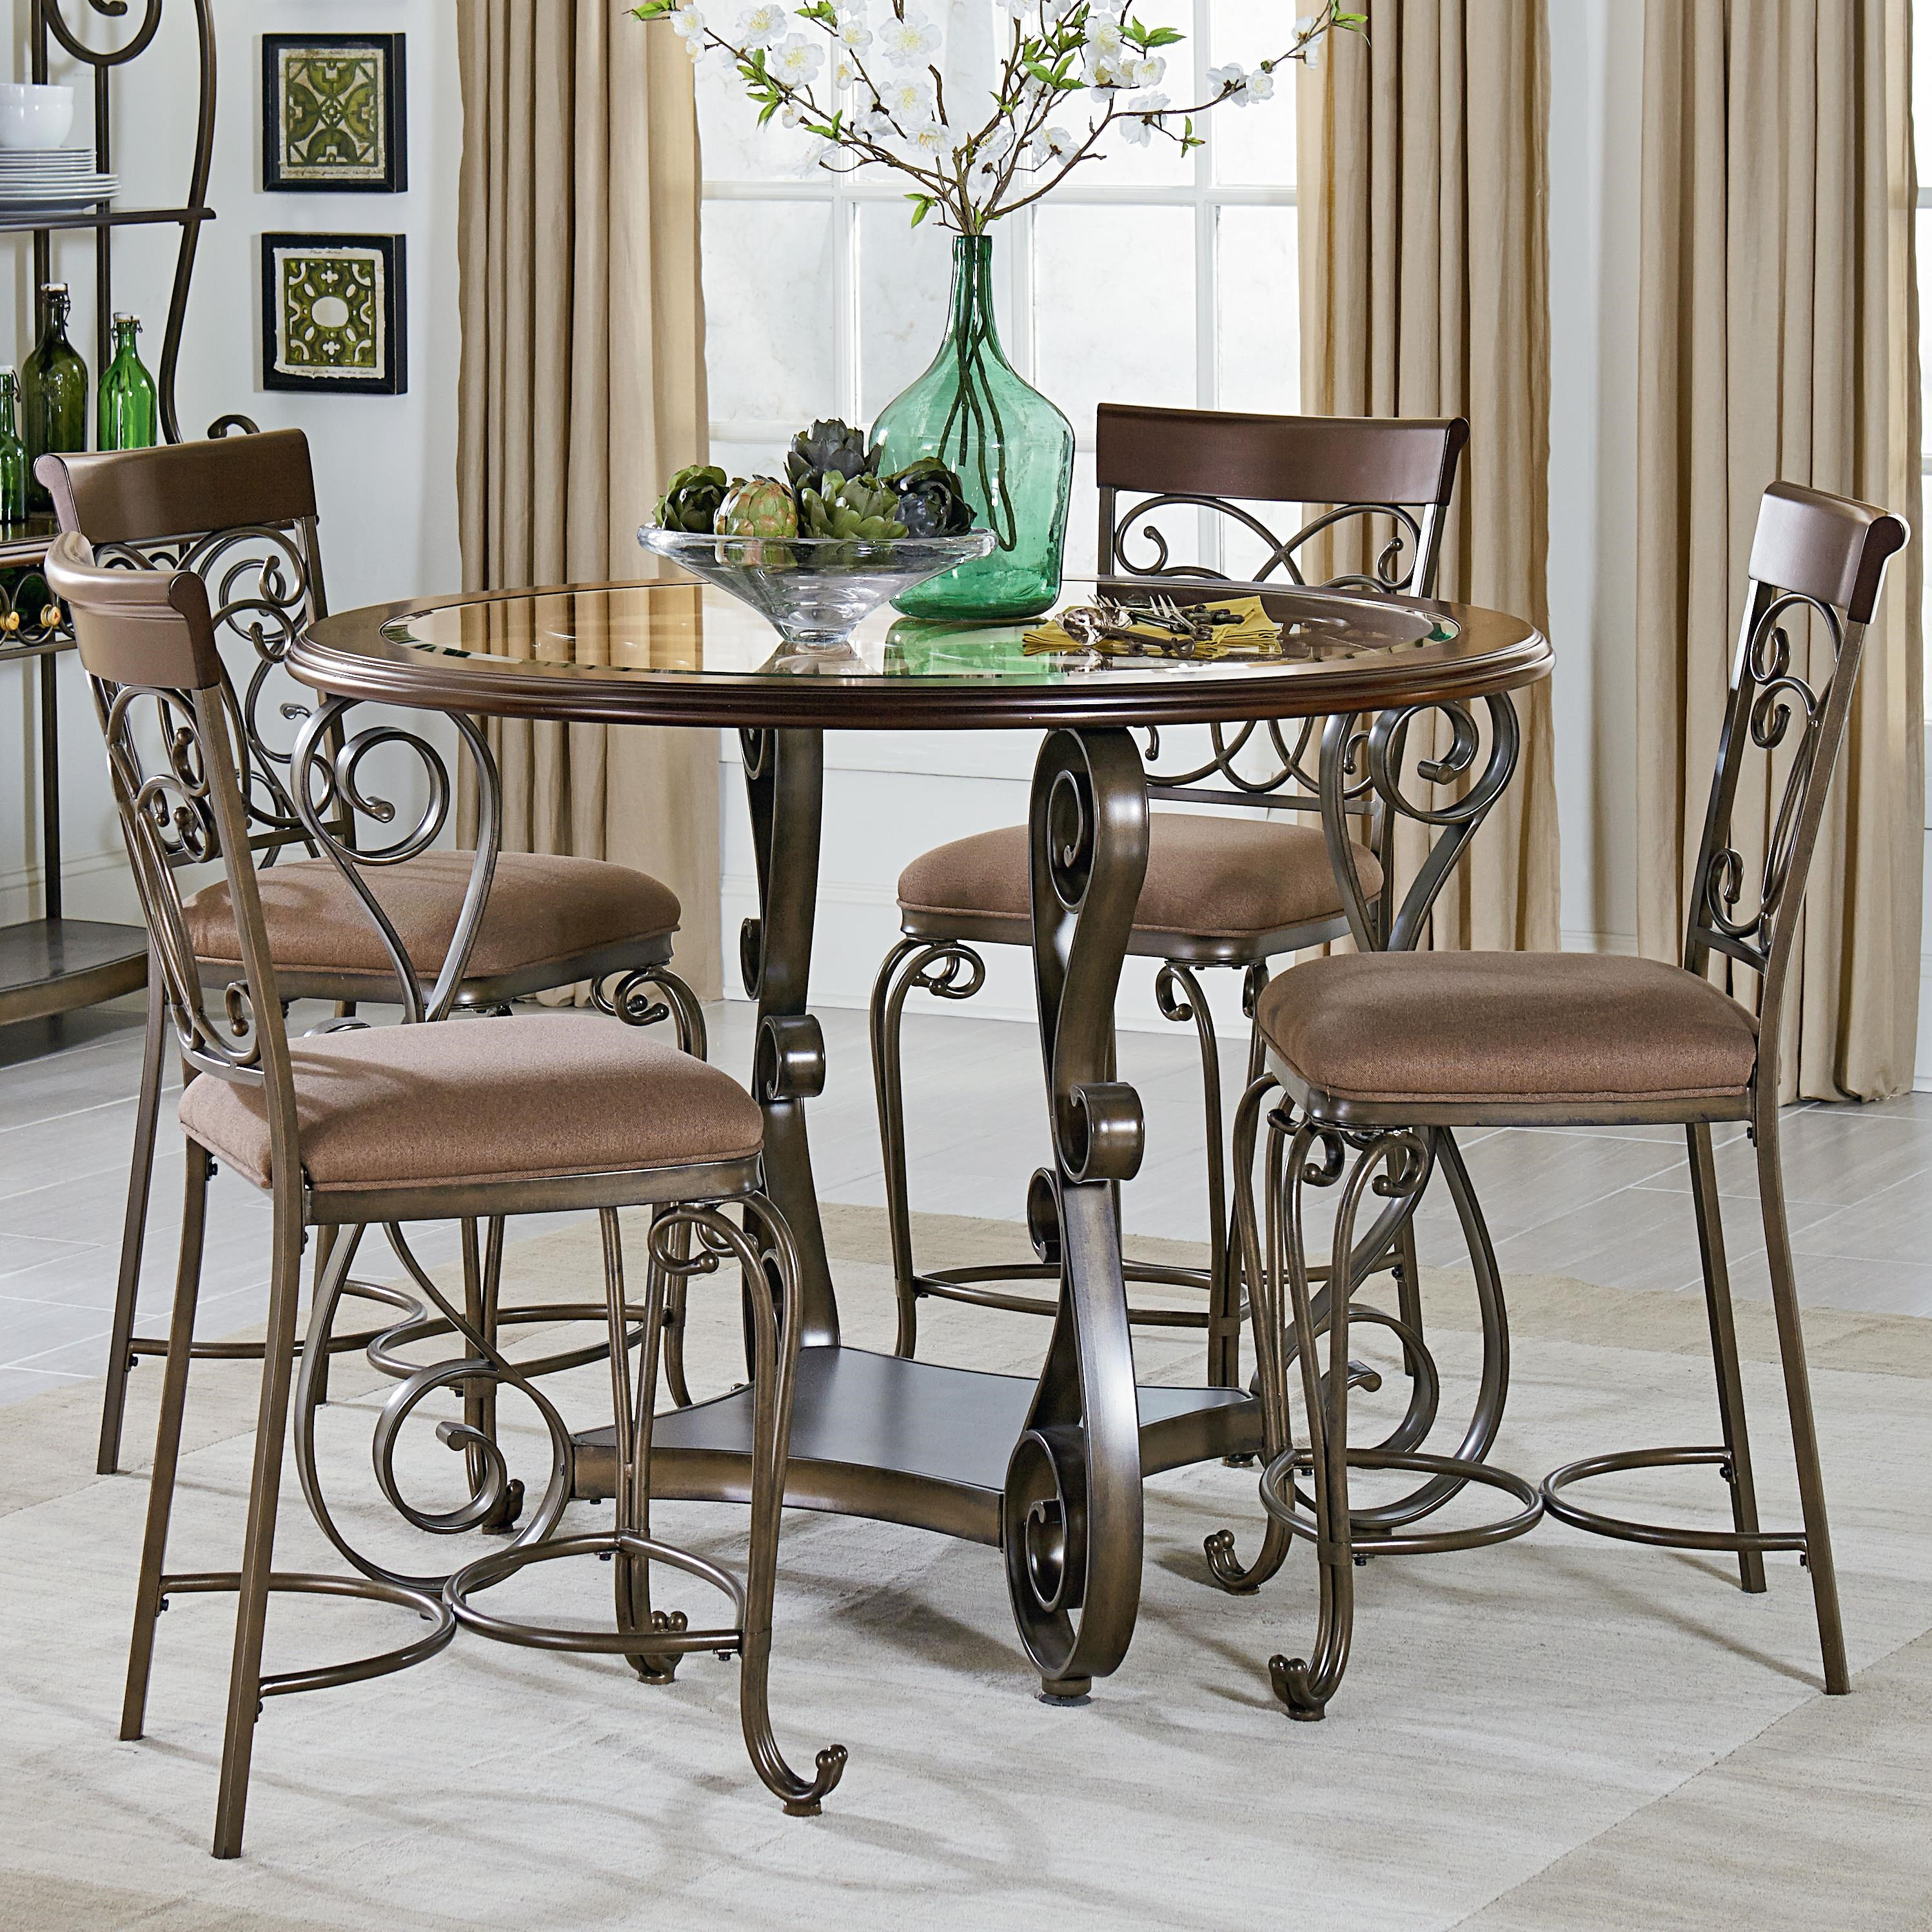 Standard Furniture Bombay Round Counter Height Table and Chair Set & Standard Furniture Bombay Round Counter Height Table and Chair Set ...